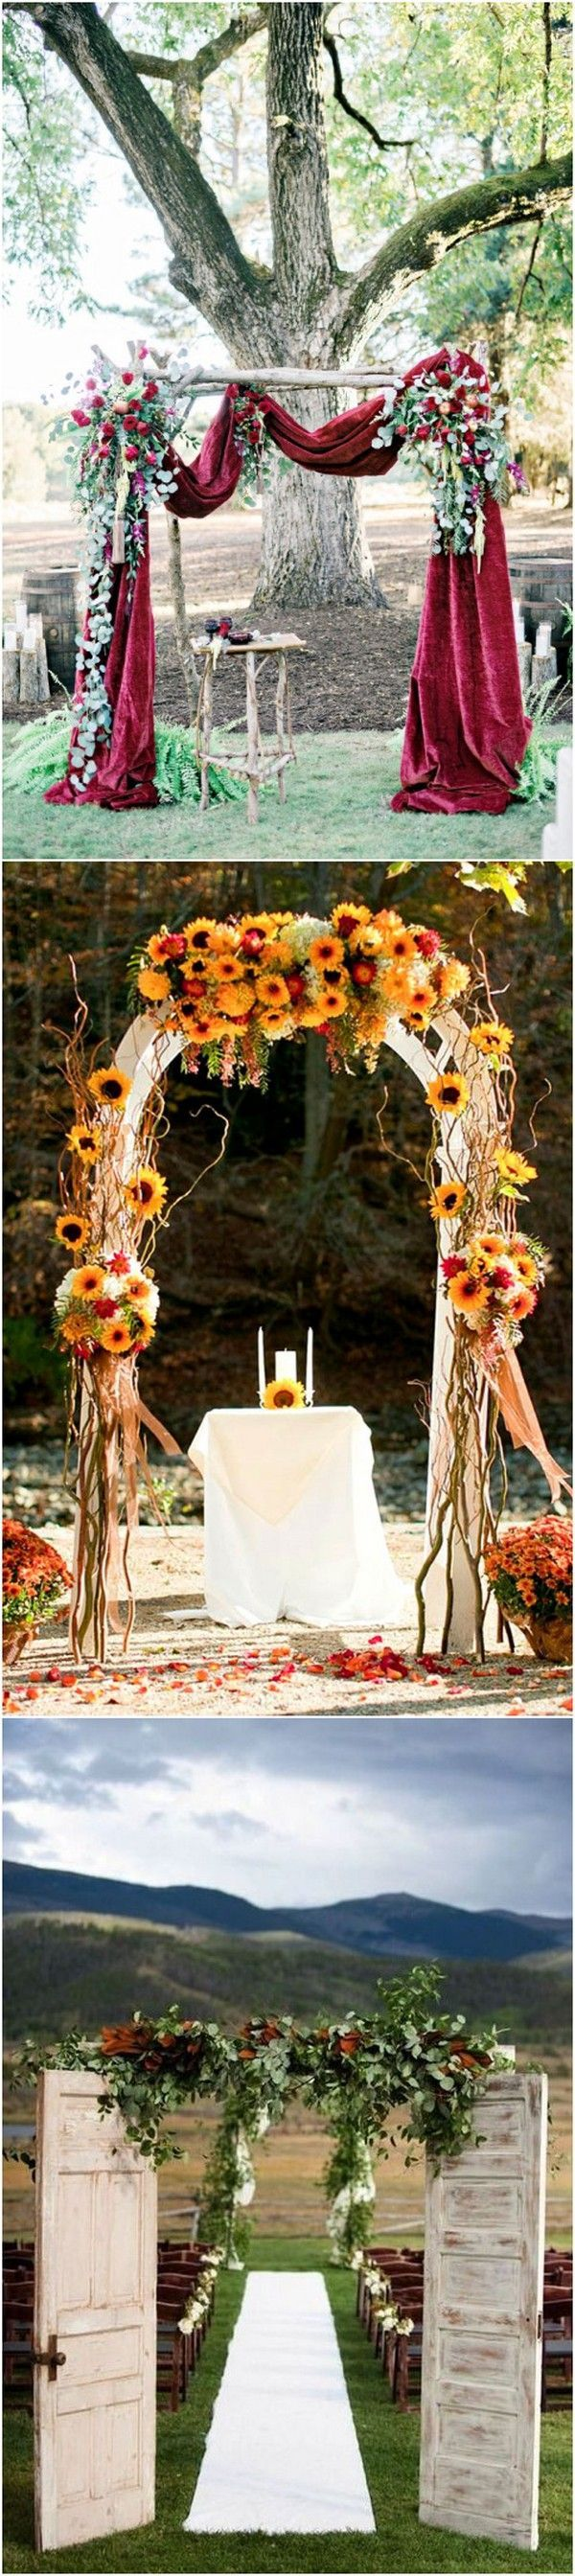 Fall wedding decoration ideas reception  wedding arch decoration ideas for fall weddingideas weddingdecor